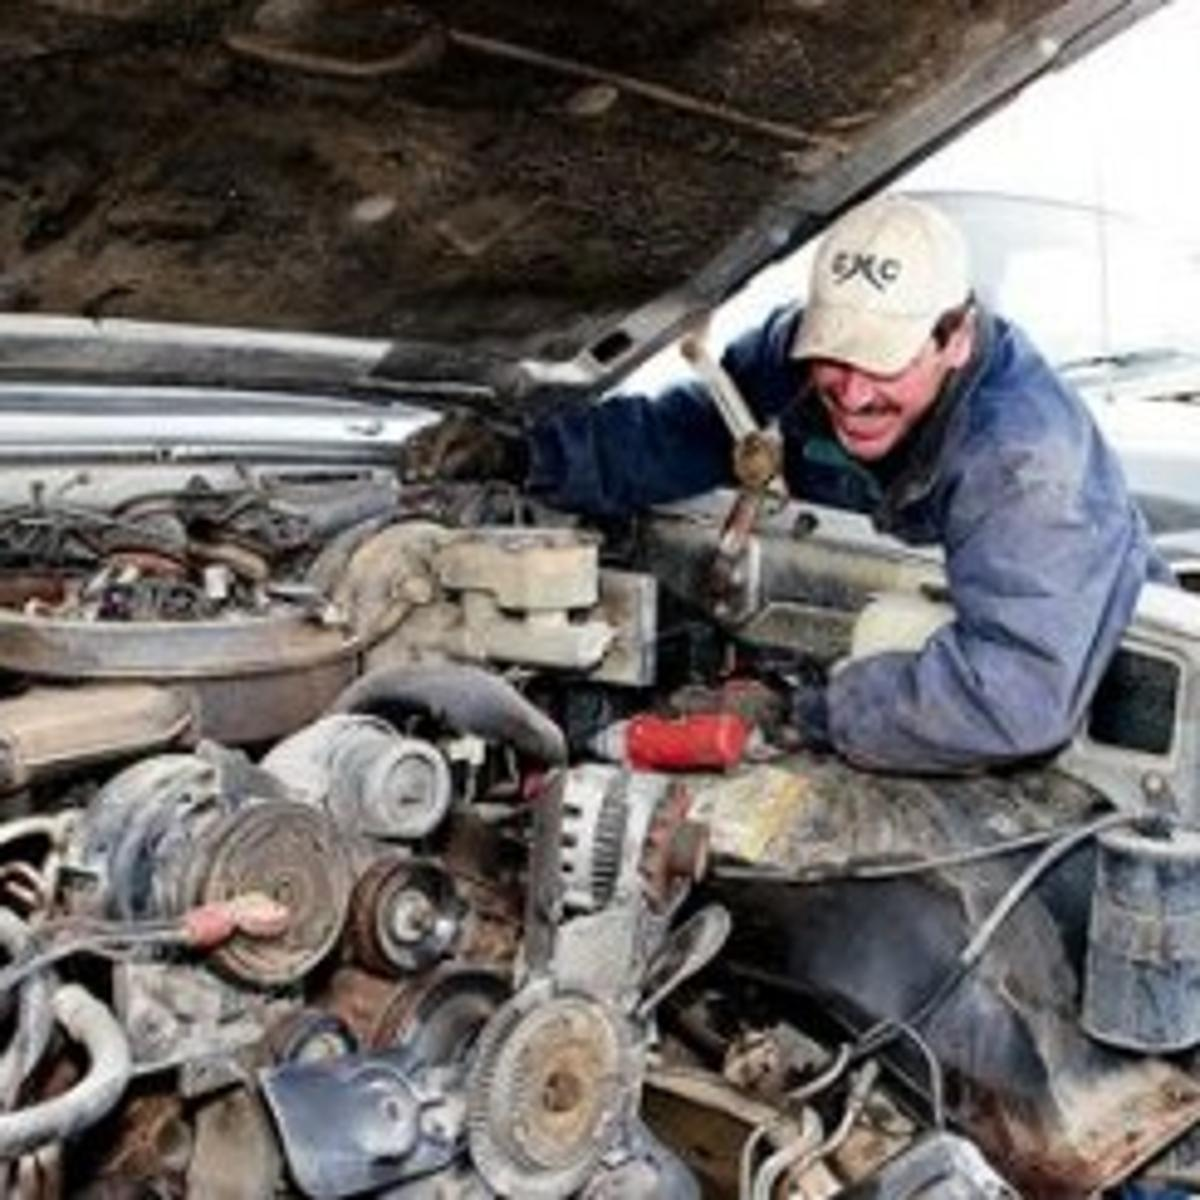 Auto Salvage Des Moines >> Self Service Auto Salvage Business Off To Good Start